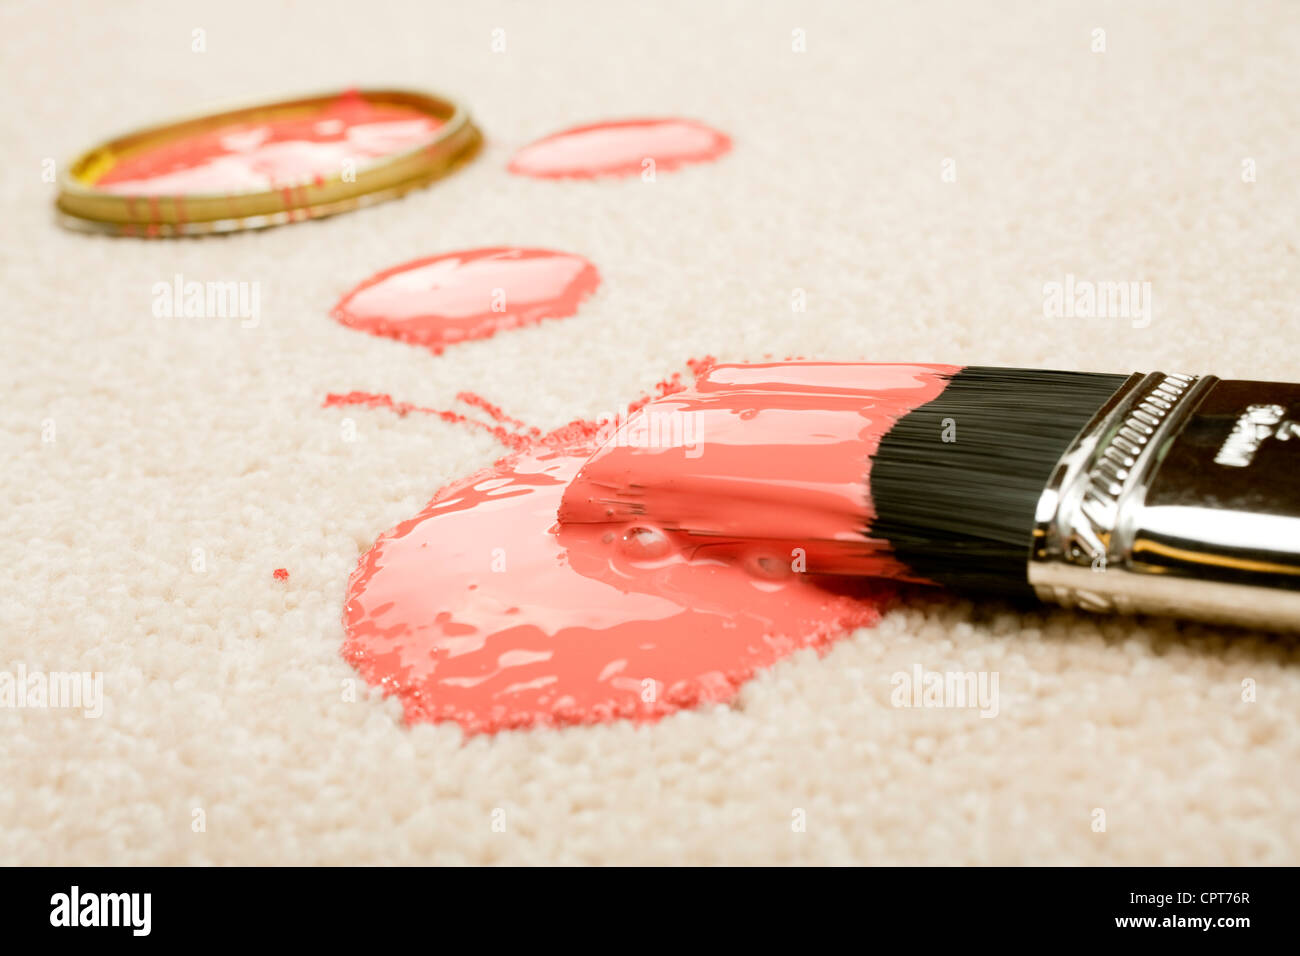 Pink paint spilled on cream coloured carpet with brush. - Stock Image